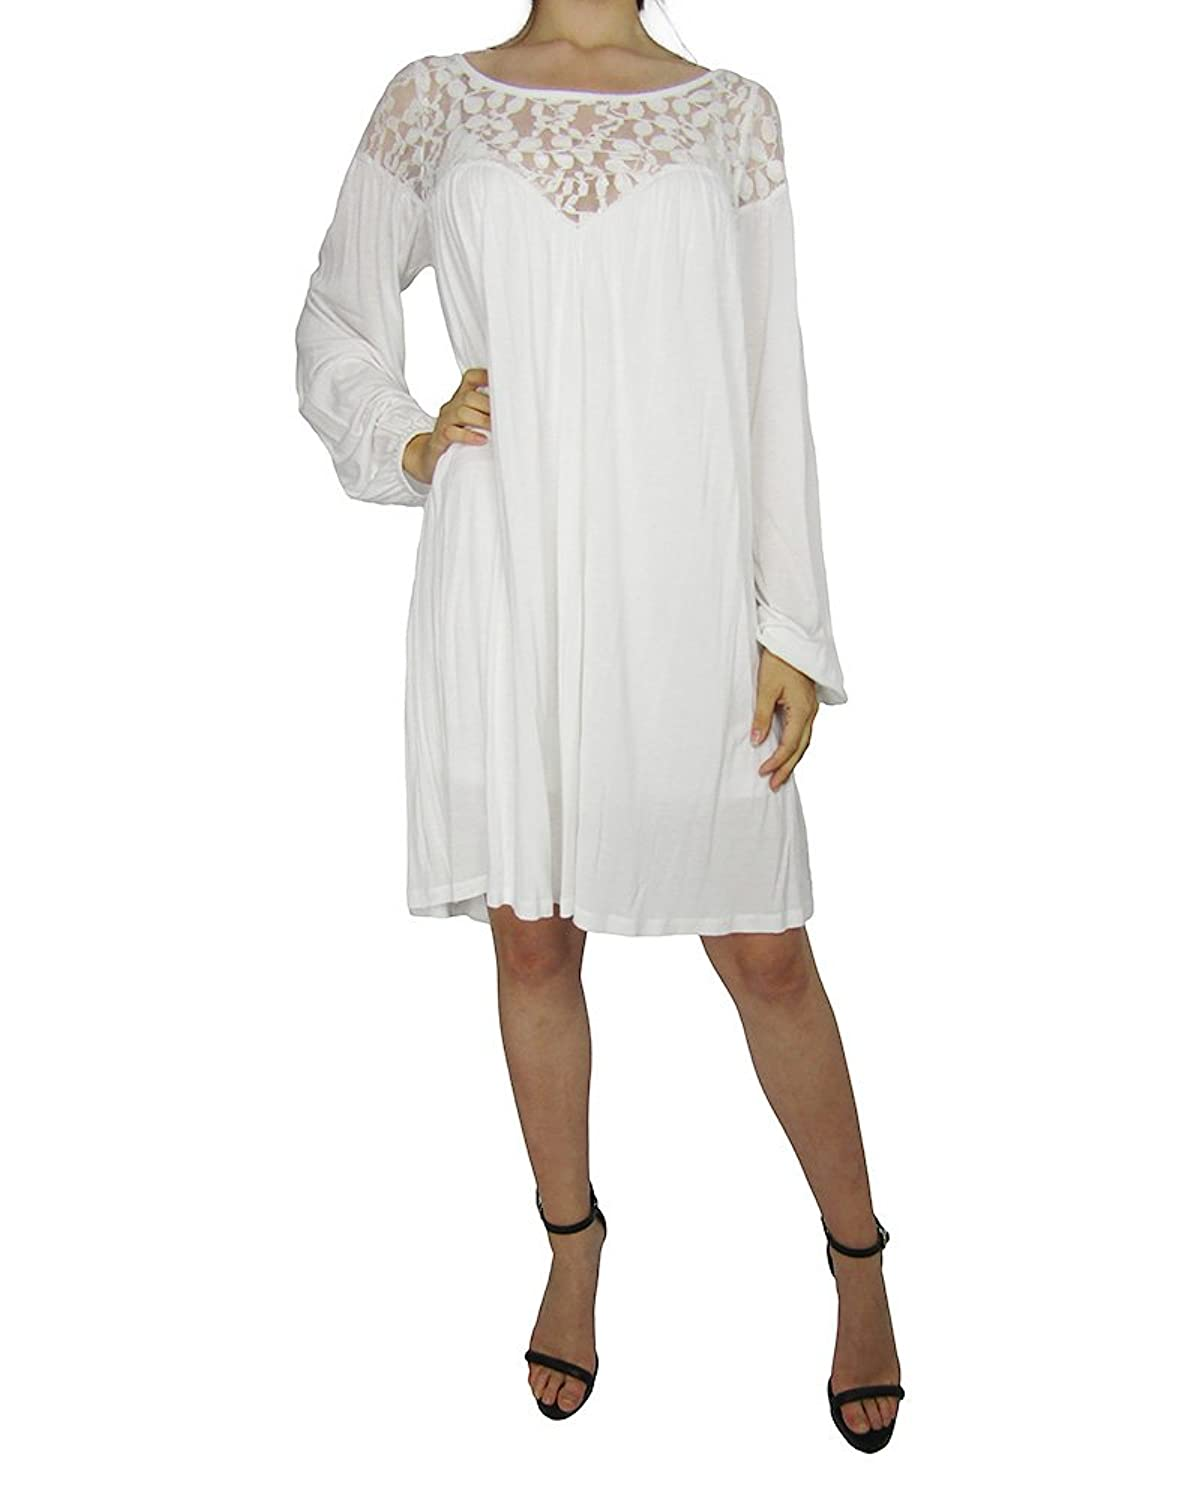 Alice By Temperley, White Lace Dress Incredibly Soft Angelic Lace slip on dress for Women, Size UK8/US4